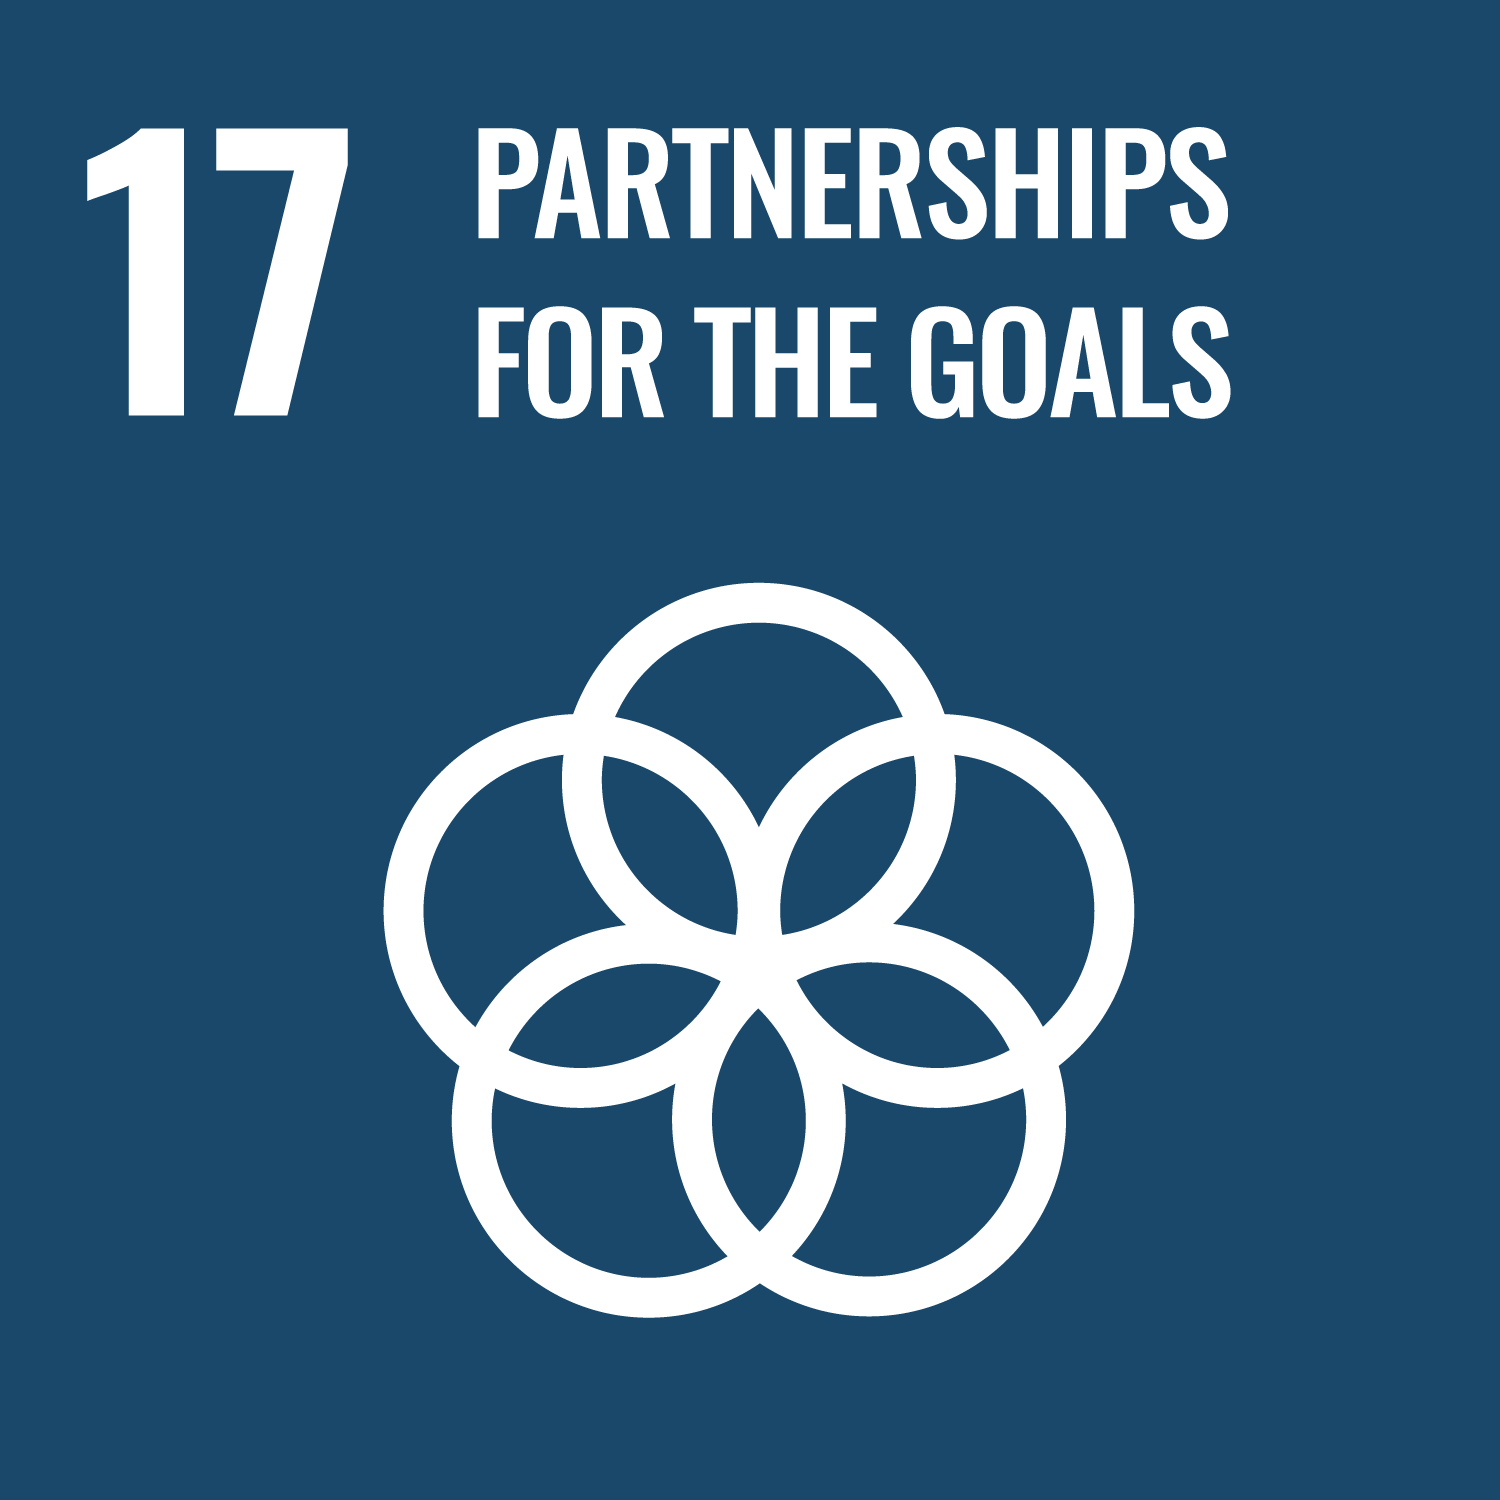 Partnerships For Goals